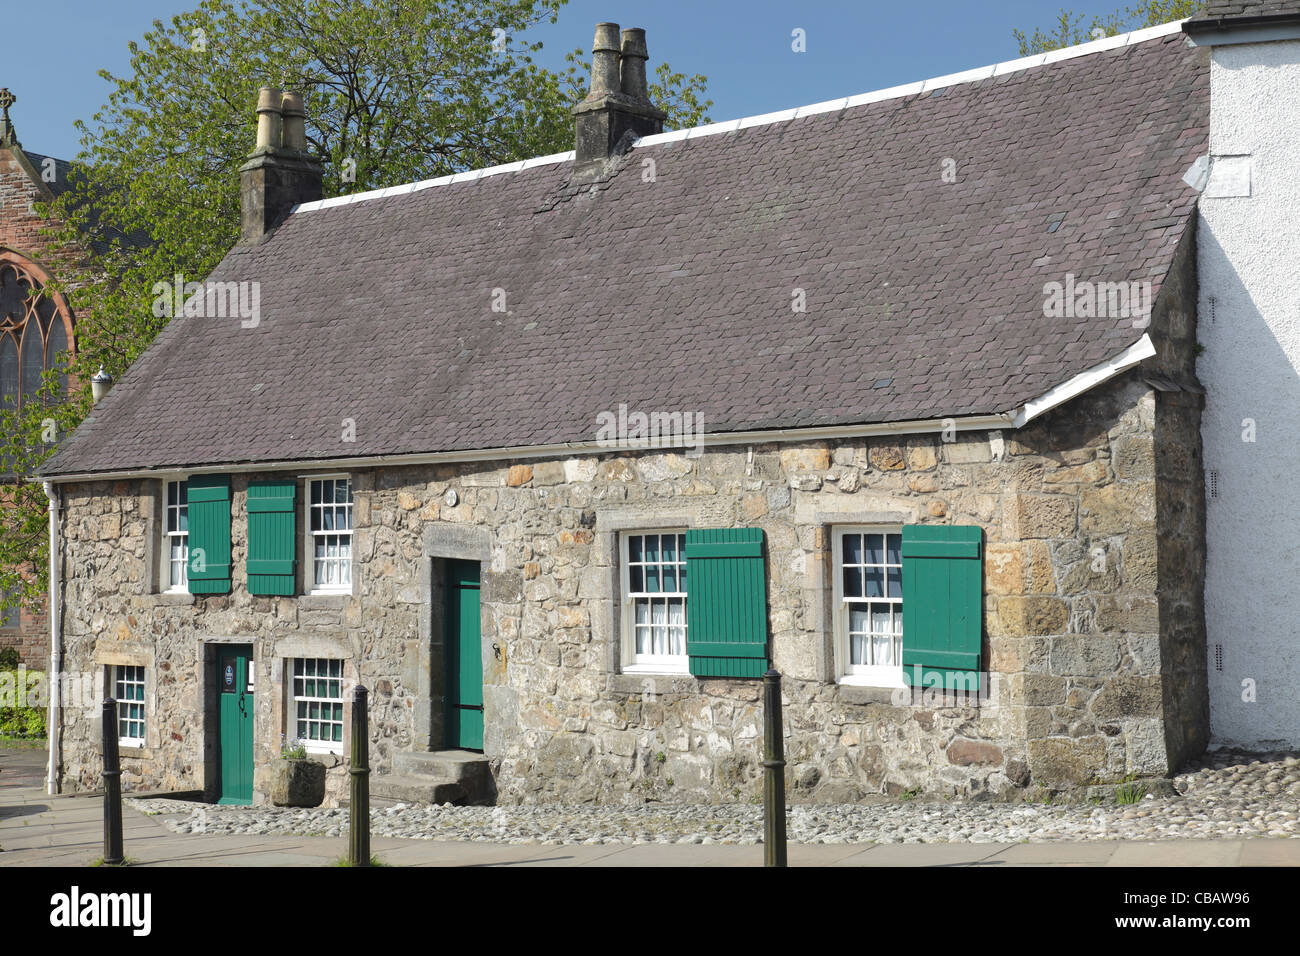 The Weaver's Cottage run by the National Trust for Scotland in Kilbarchan, Renfrewshire, UK - Stock Image